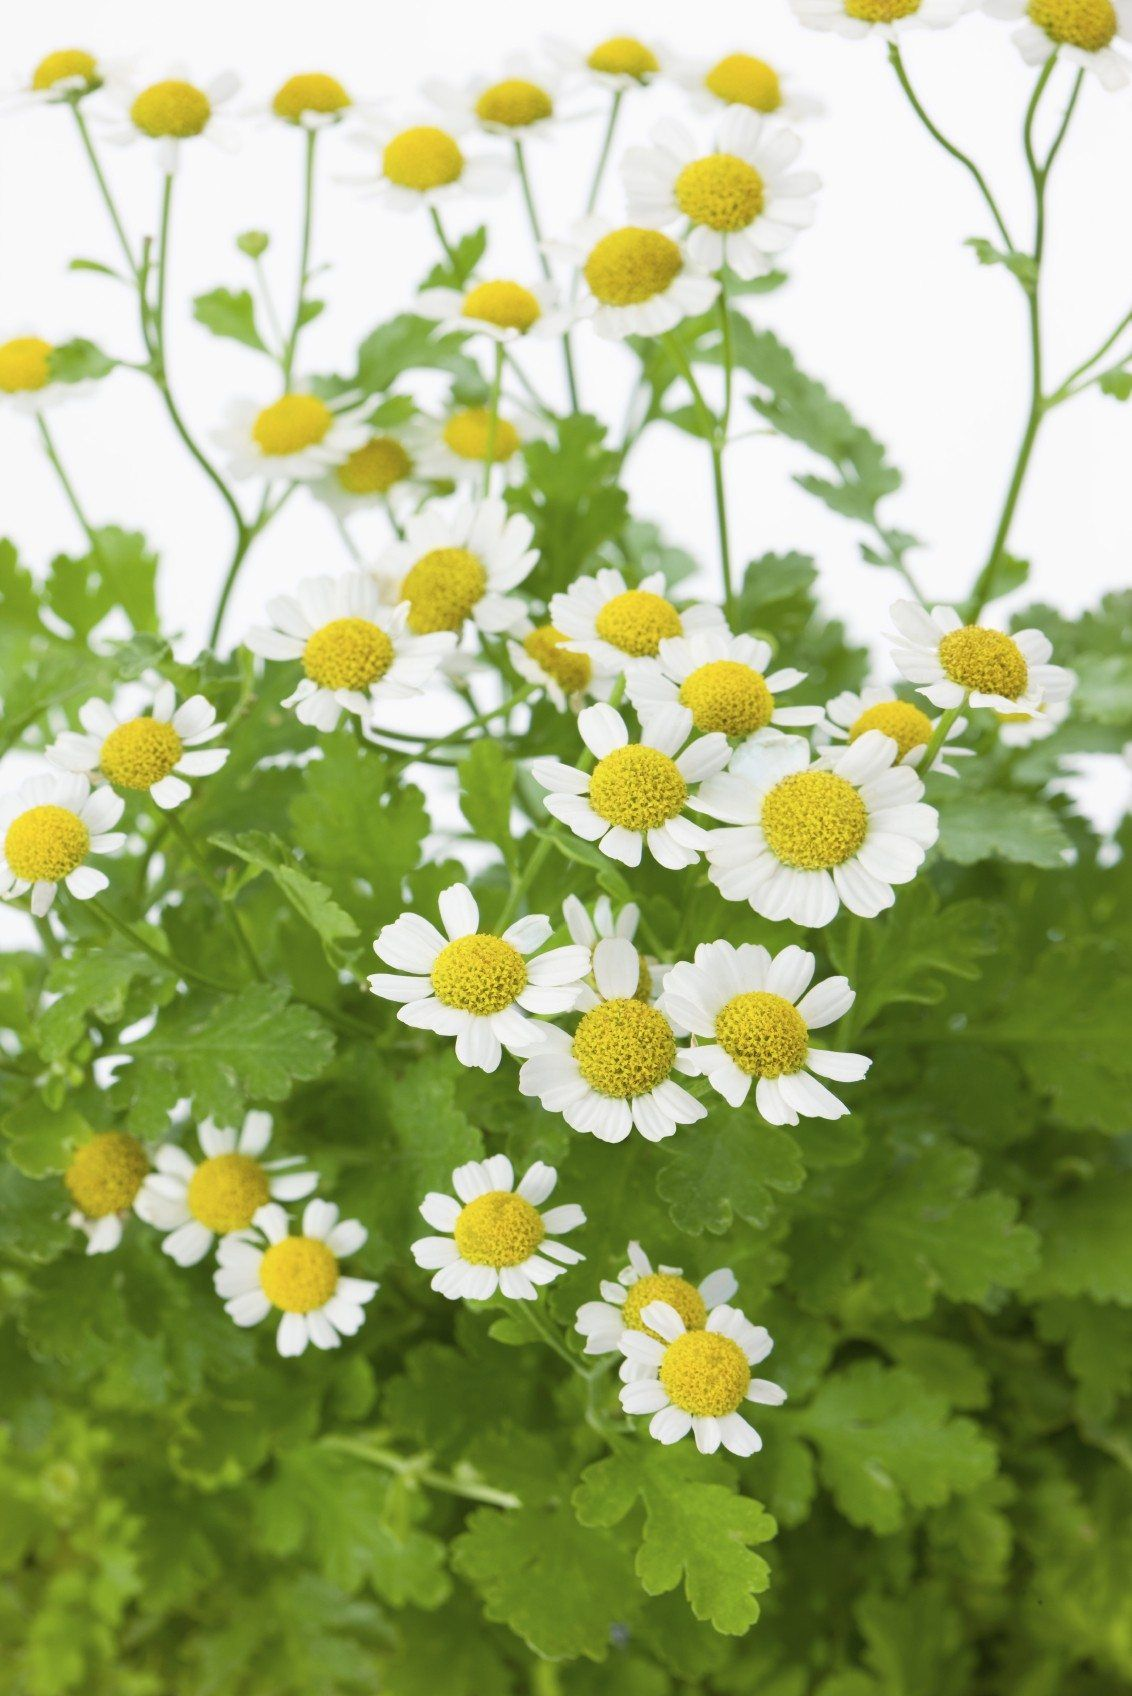 Harvesting Feverfew Herbs How To Harvest Feverfew Plants In 2020 Feverfew Plant Herbs Feverfew